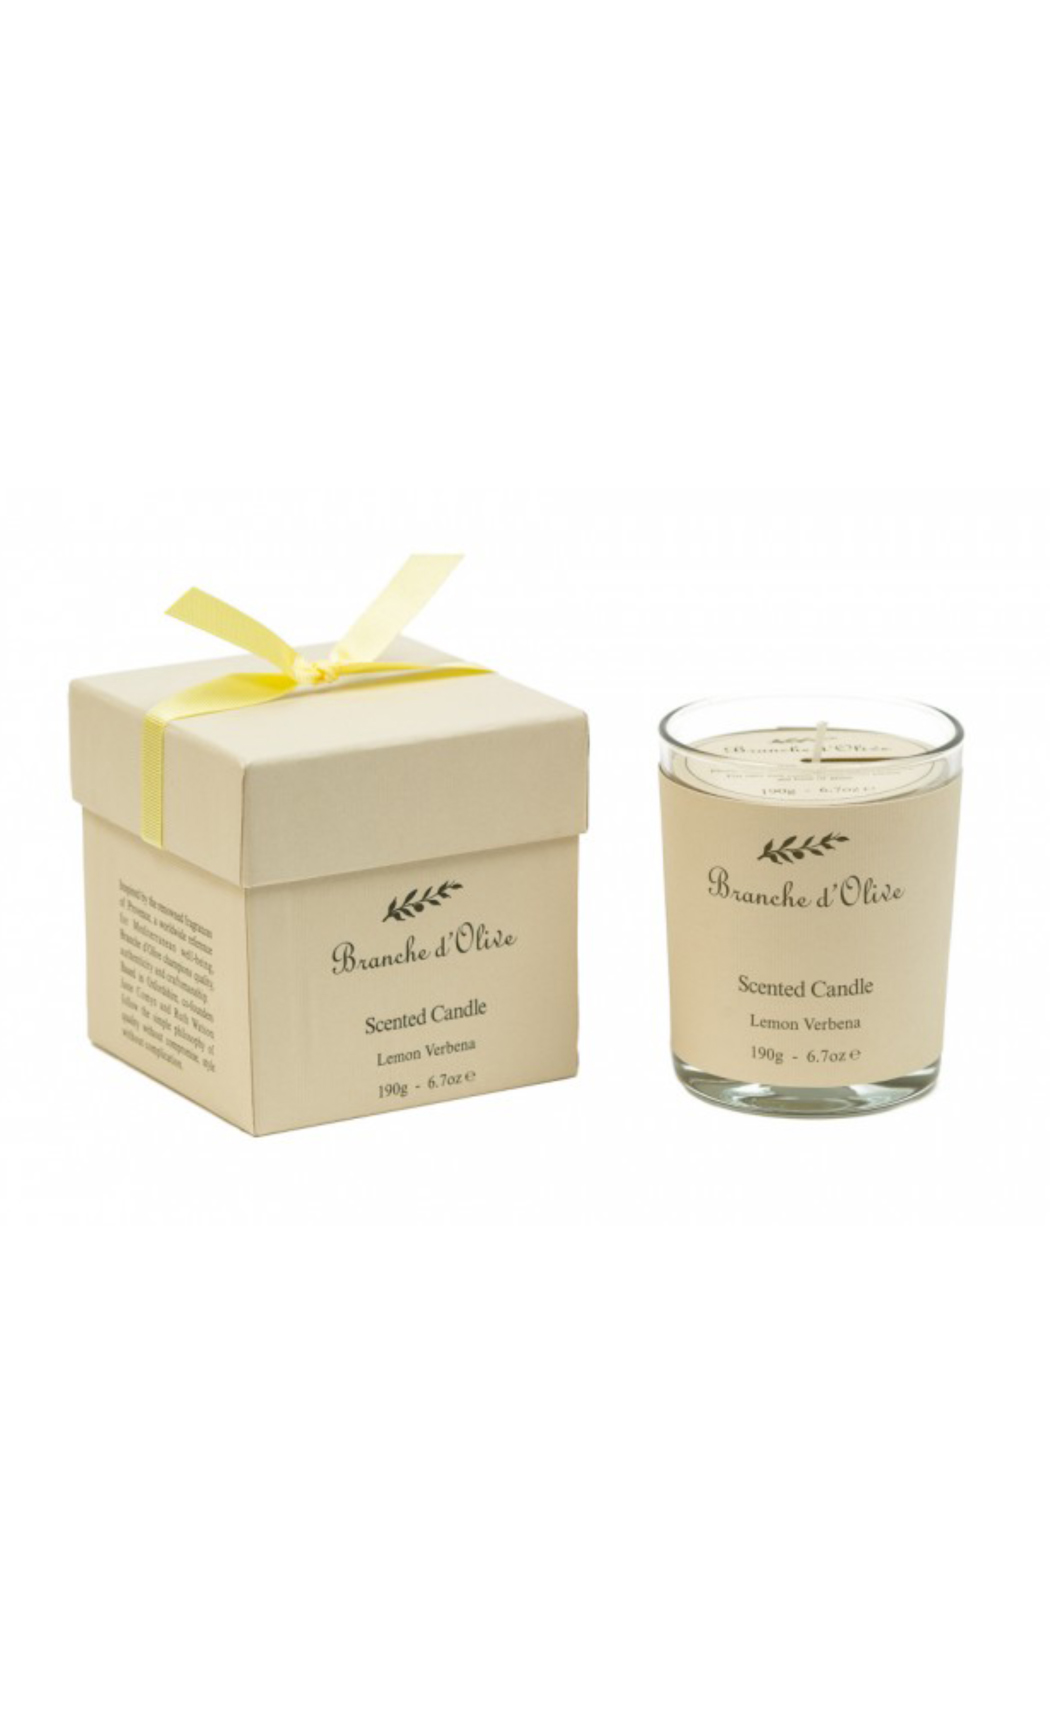 Lemon Verbena Scented Citrus Fragrance Wax Candle - Gifts by Branche d'Olive - Shop Online in India